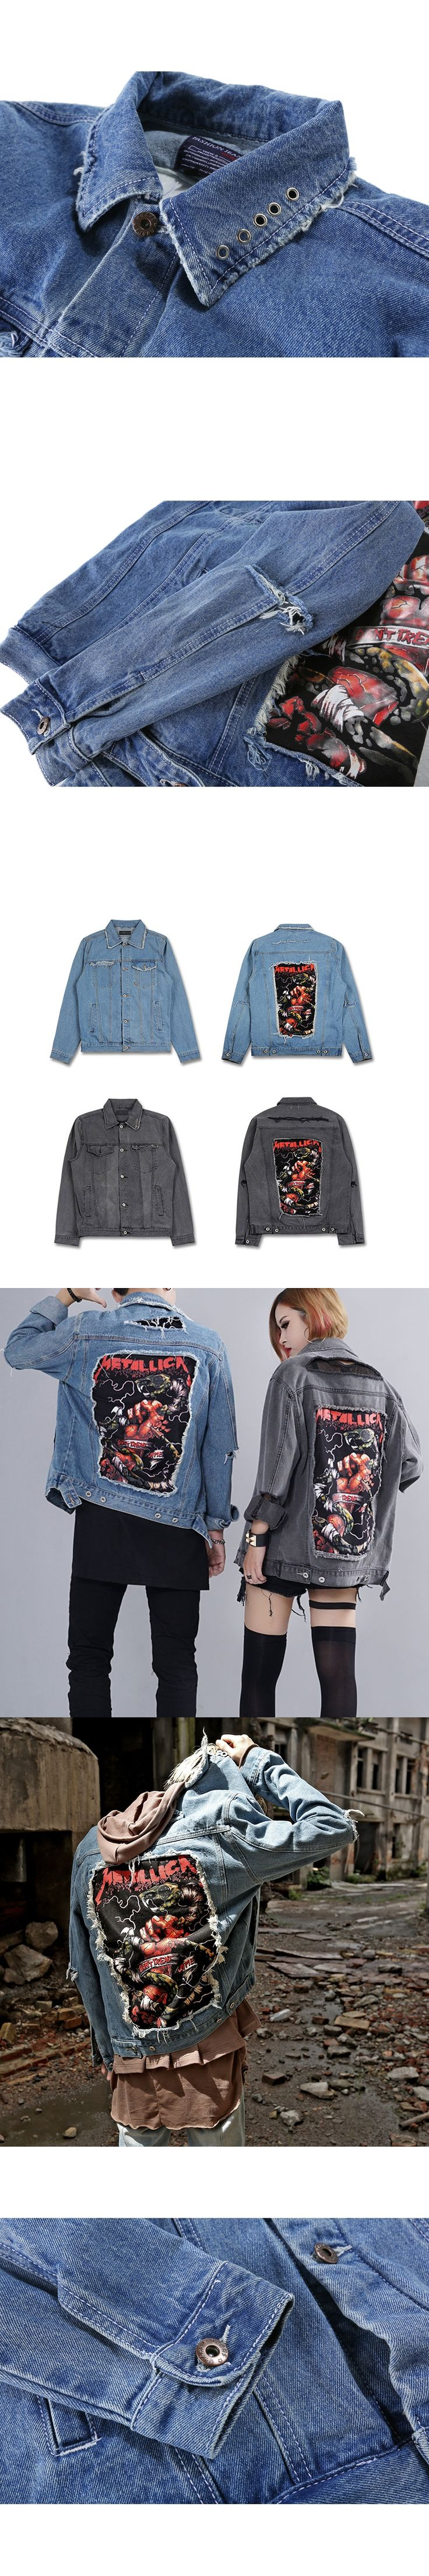 Mens Denim Jackets 2017 Streetwear Oversize Brand-Clothing Patch Holes Patch Designs Ripped Washed Jacket Hip-Hop Tide M-XL